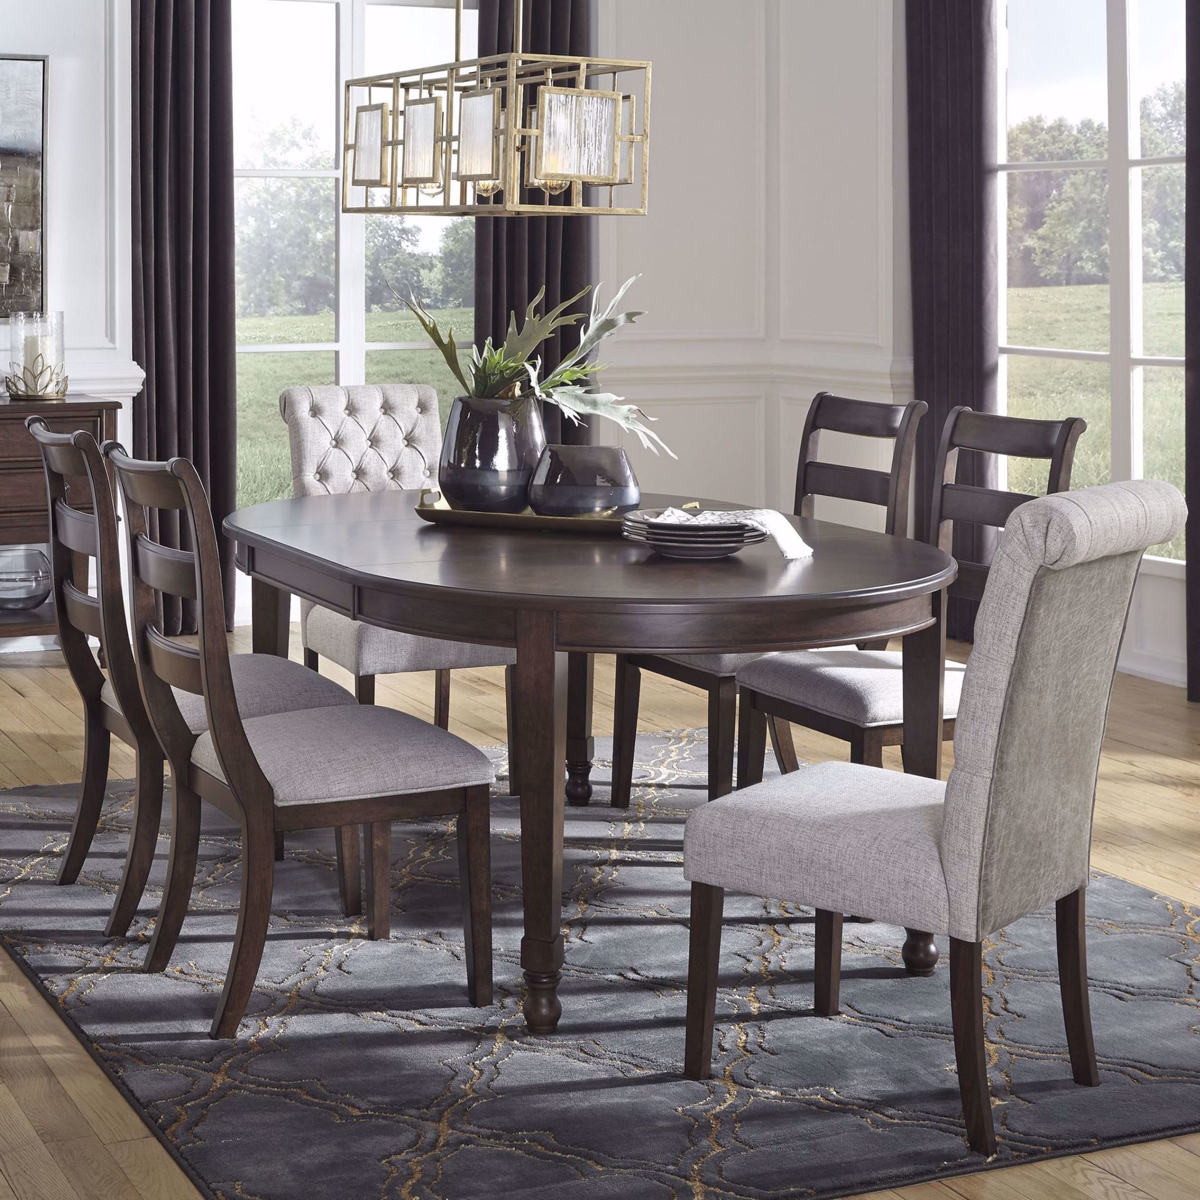 Picture of Arlington Dining Room Table